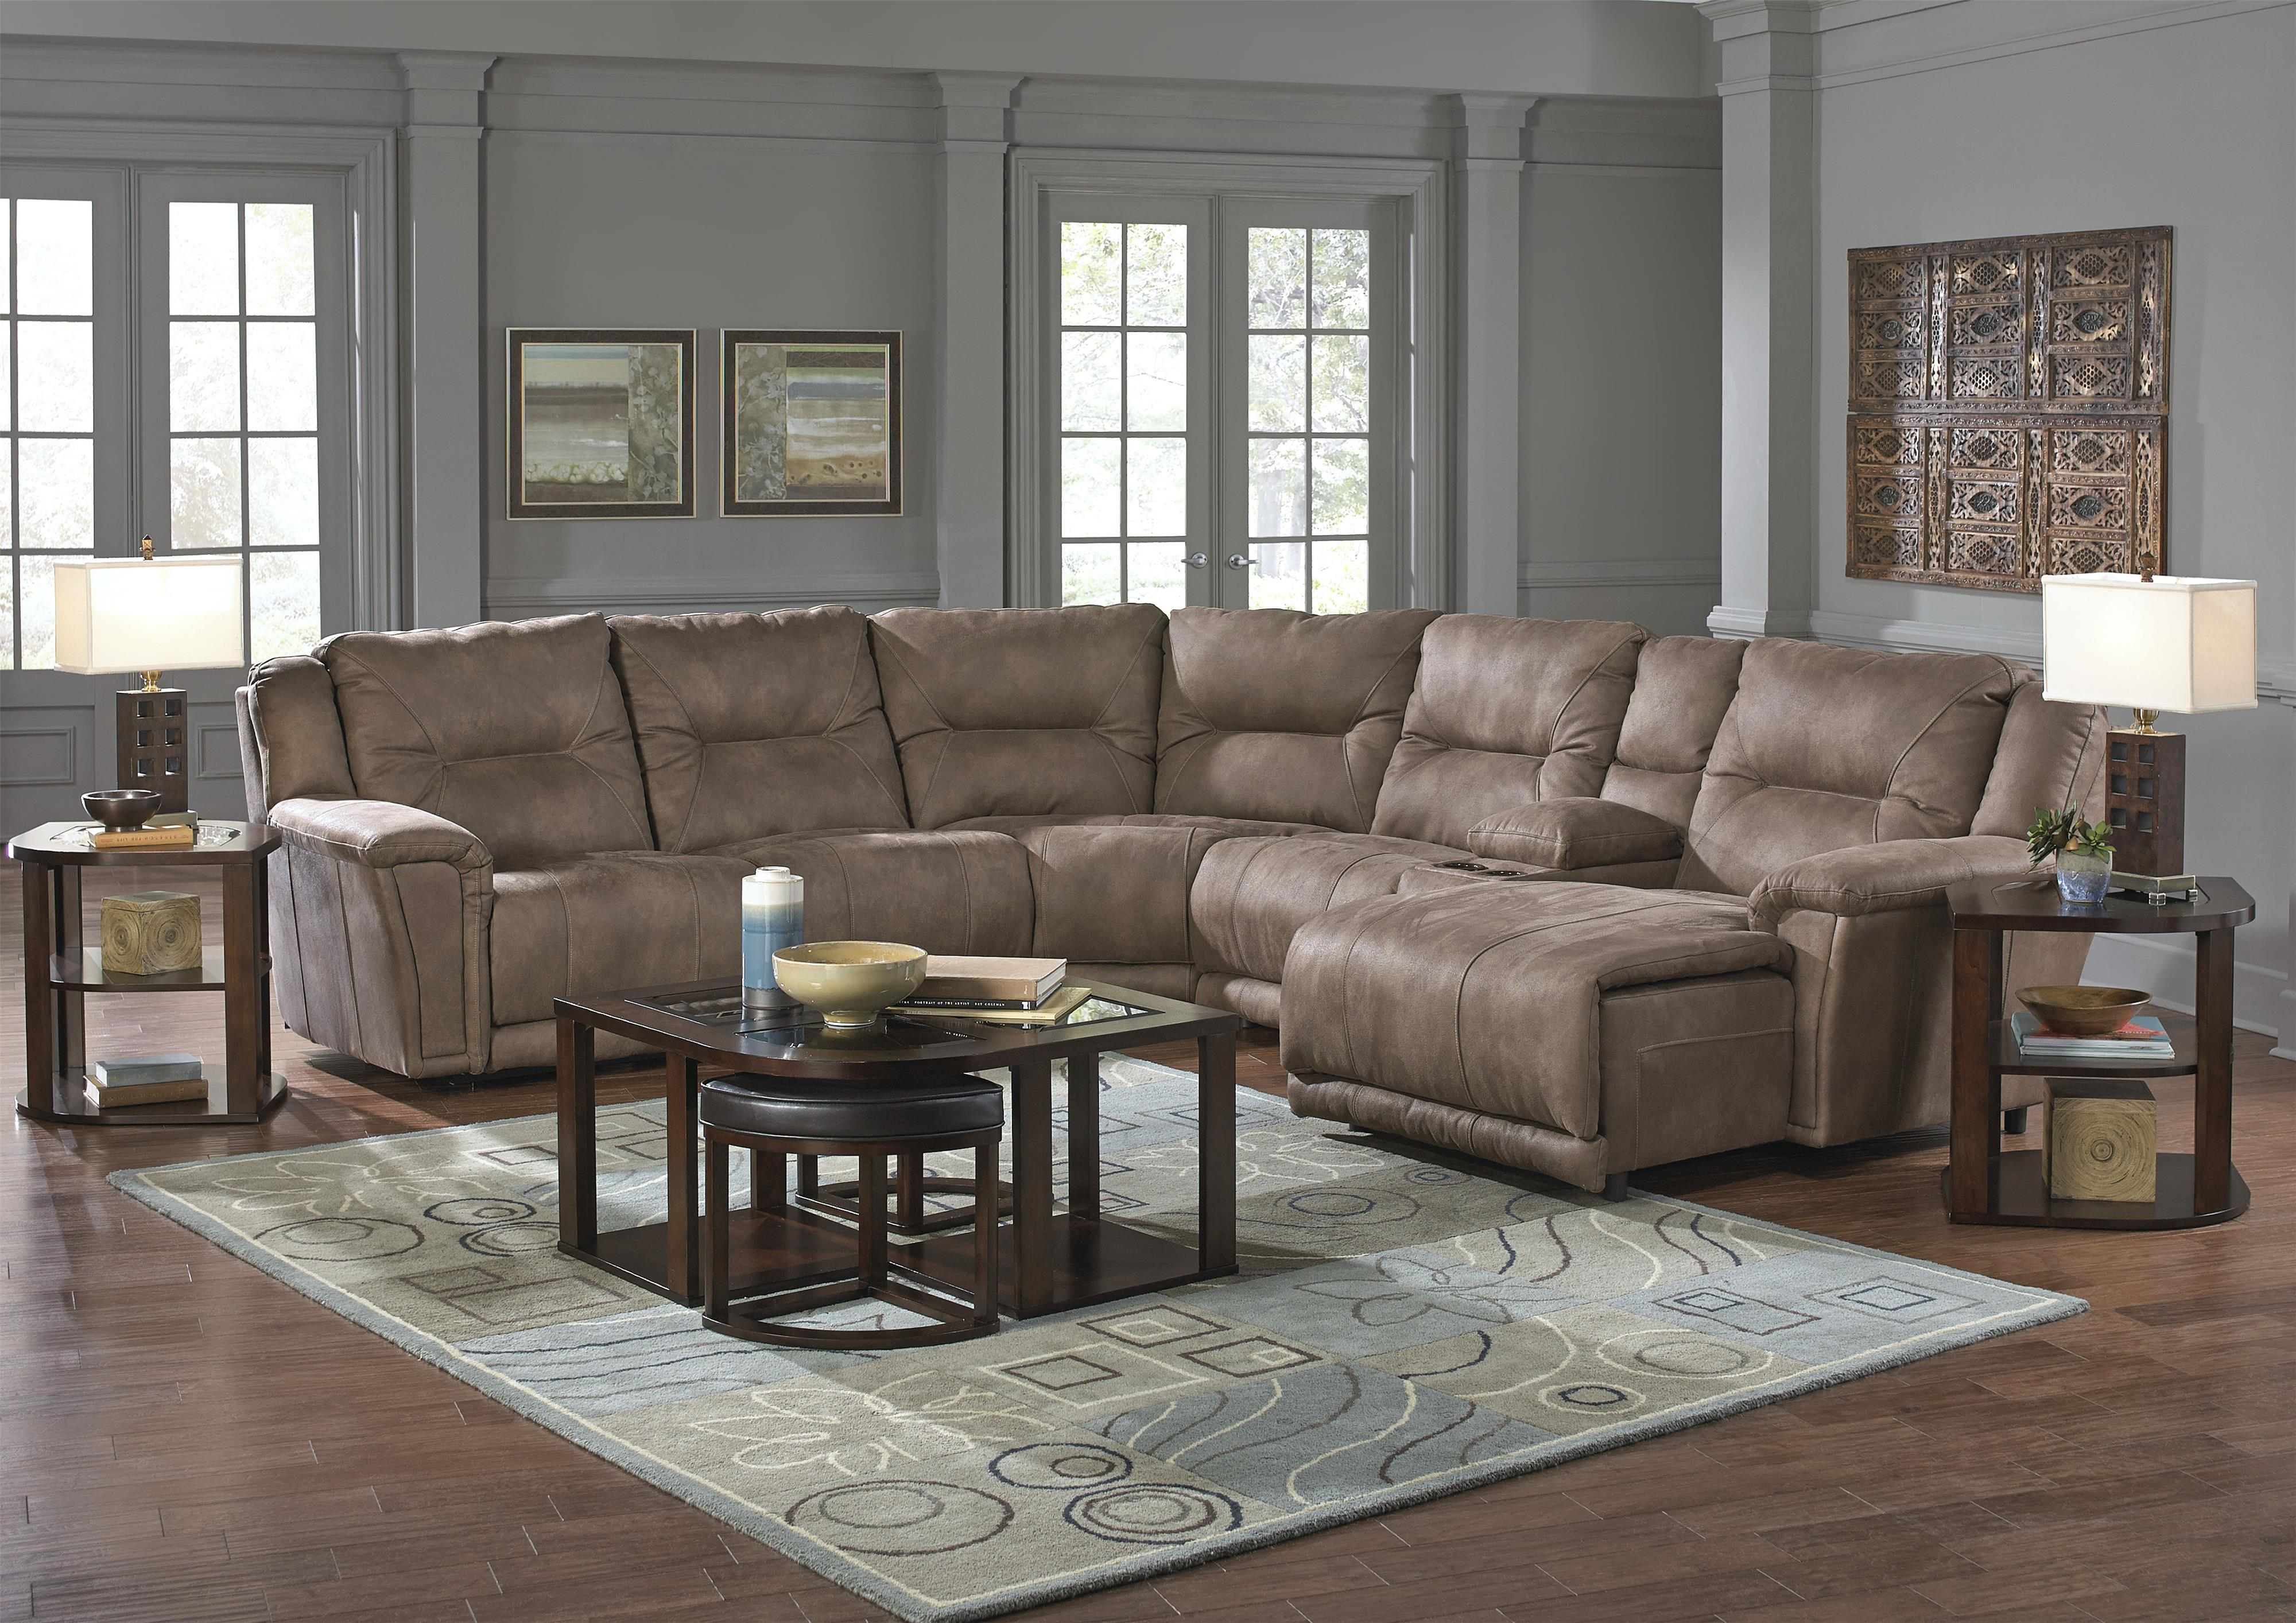 Catnapper Montgomery Reclining Sectional With 4 Seats And